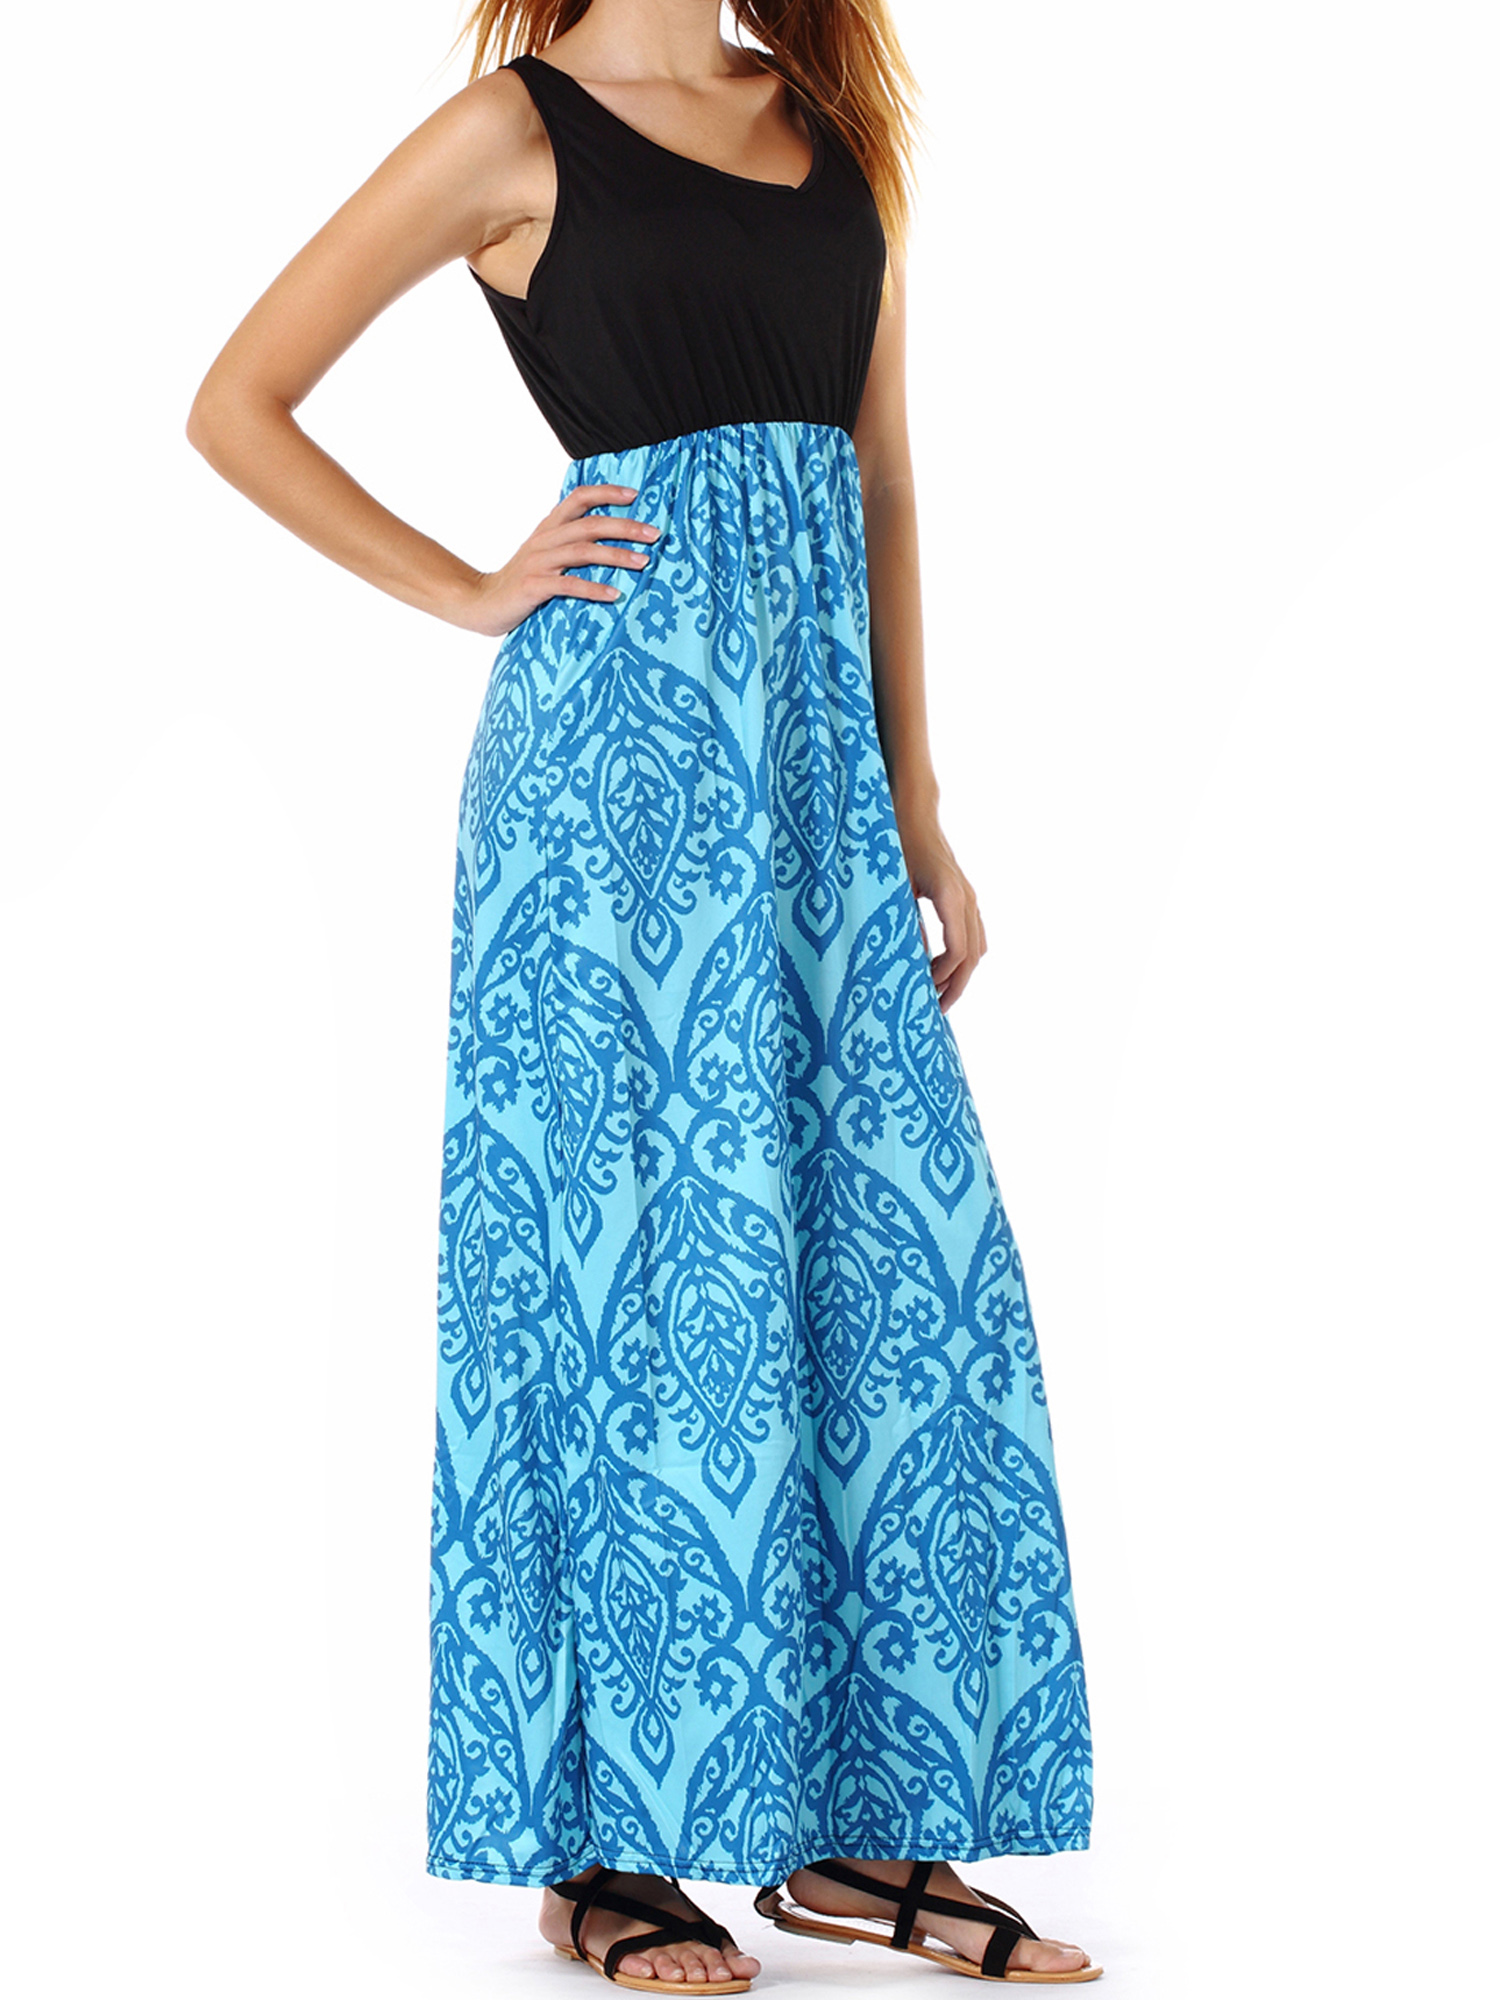 Pregnant Maternity Boho Printed Maxi Dress Constrast Color Blocking